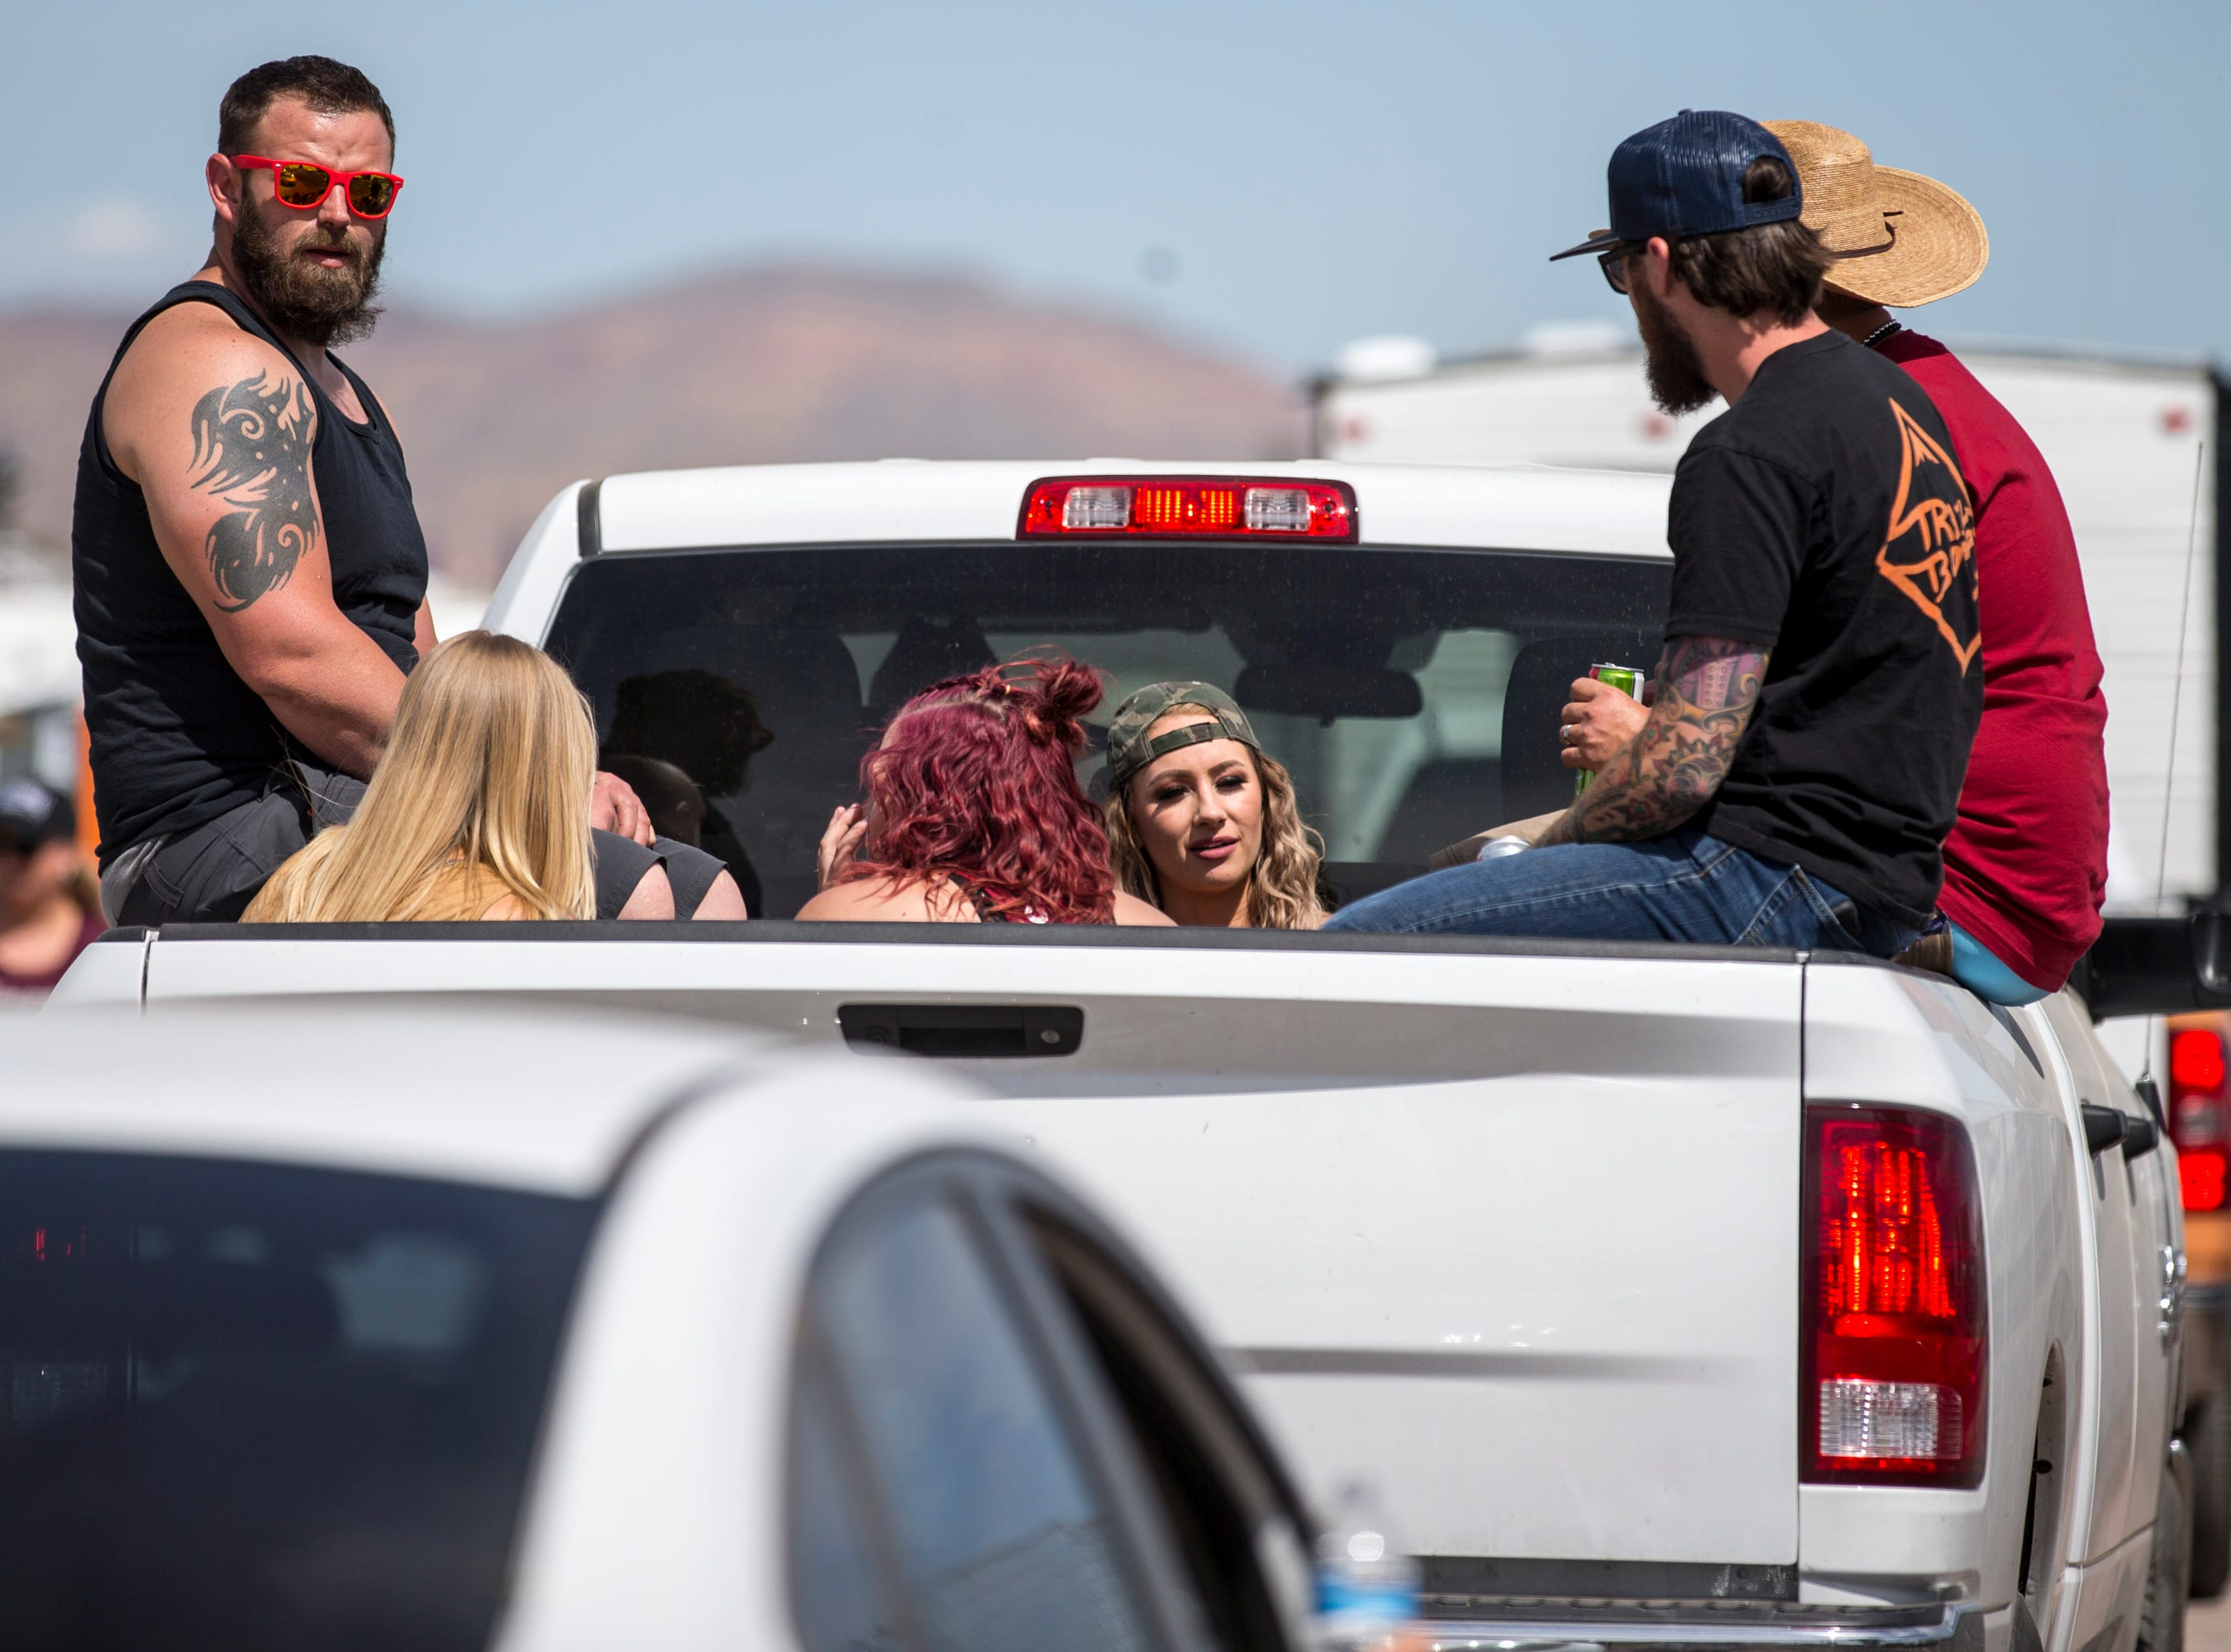 Festival-goers drive by campsites on April 11, 2019, during Day 1 of Country Thunder Arizona in Florence.